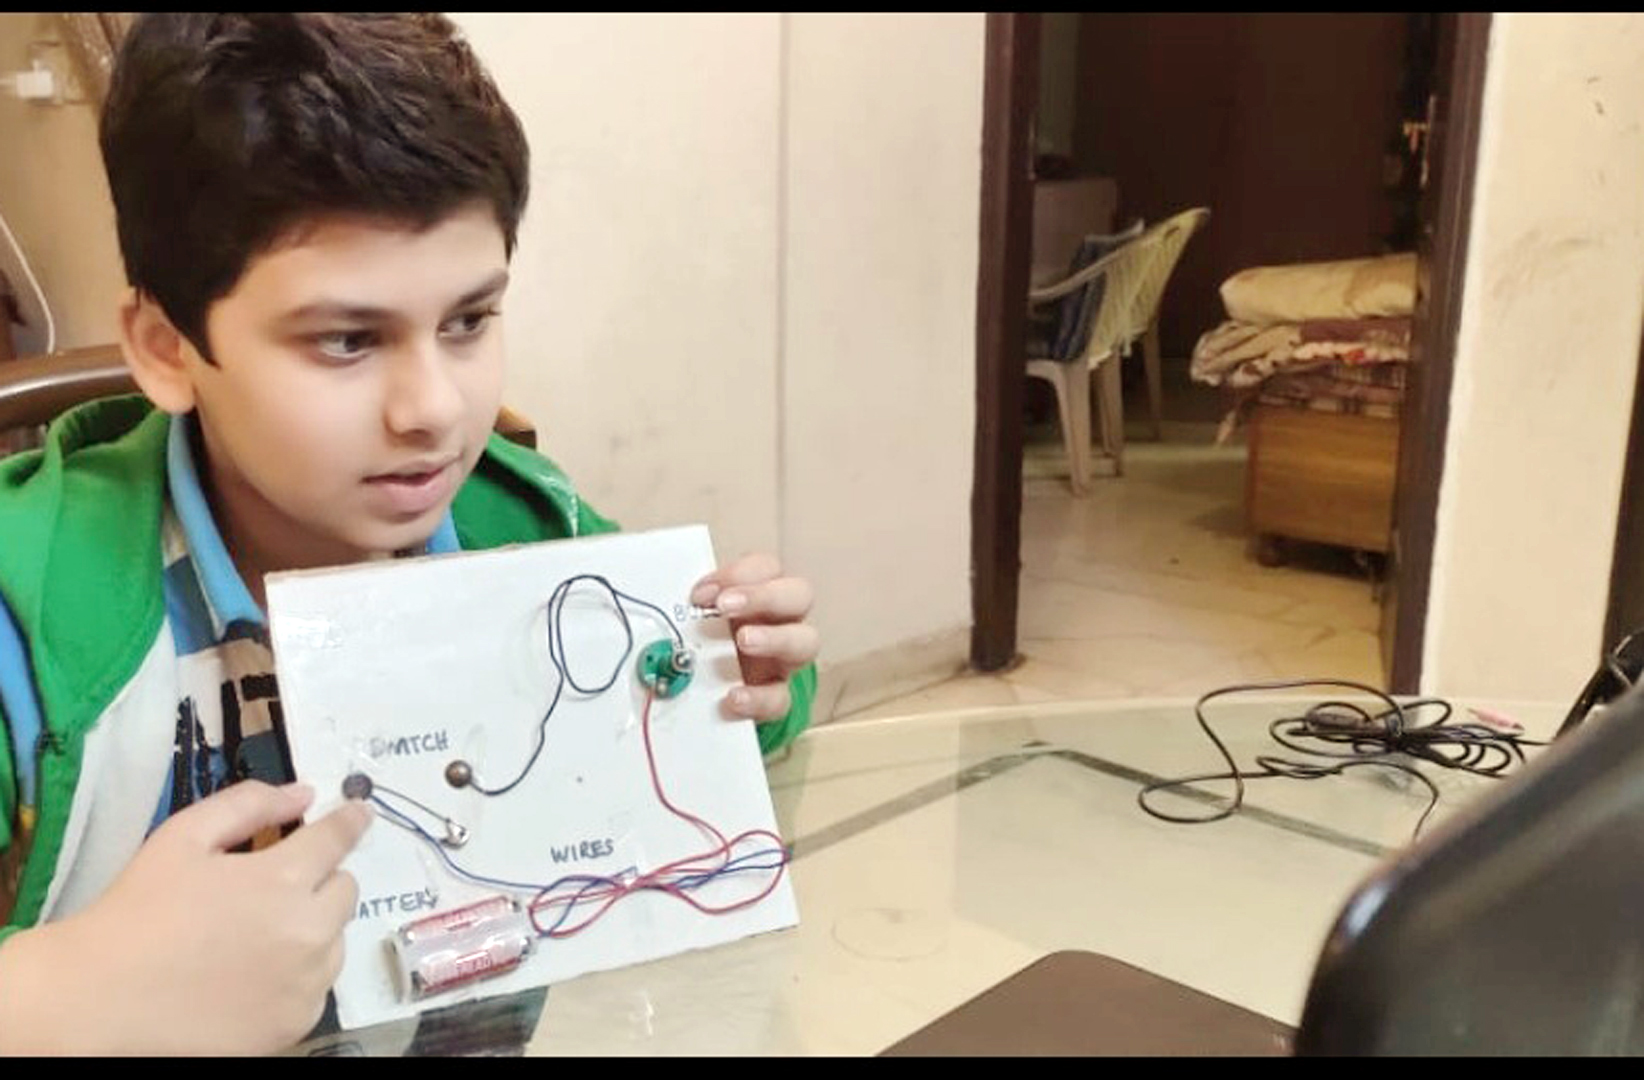 STUDENTS TAKE PART IN ELECTRIC CIRCUIT ACTIVITY 2020